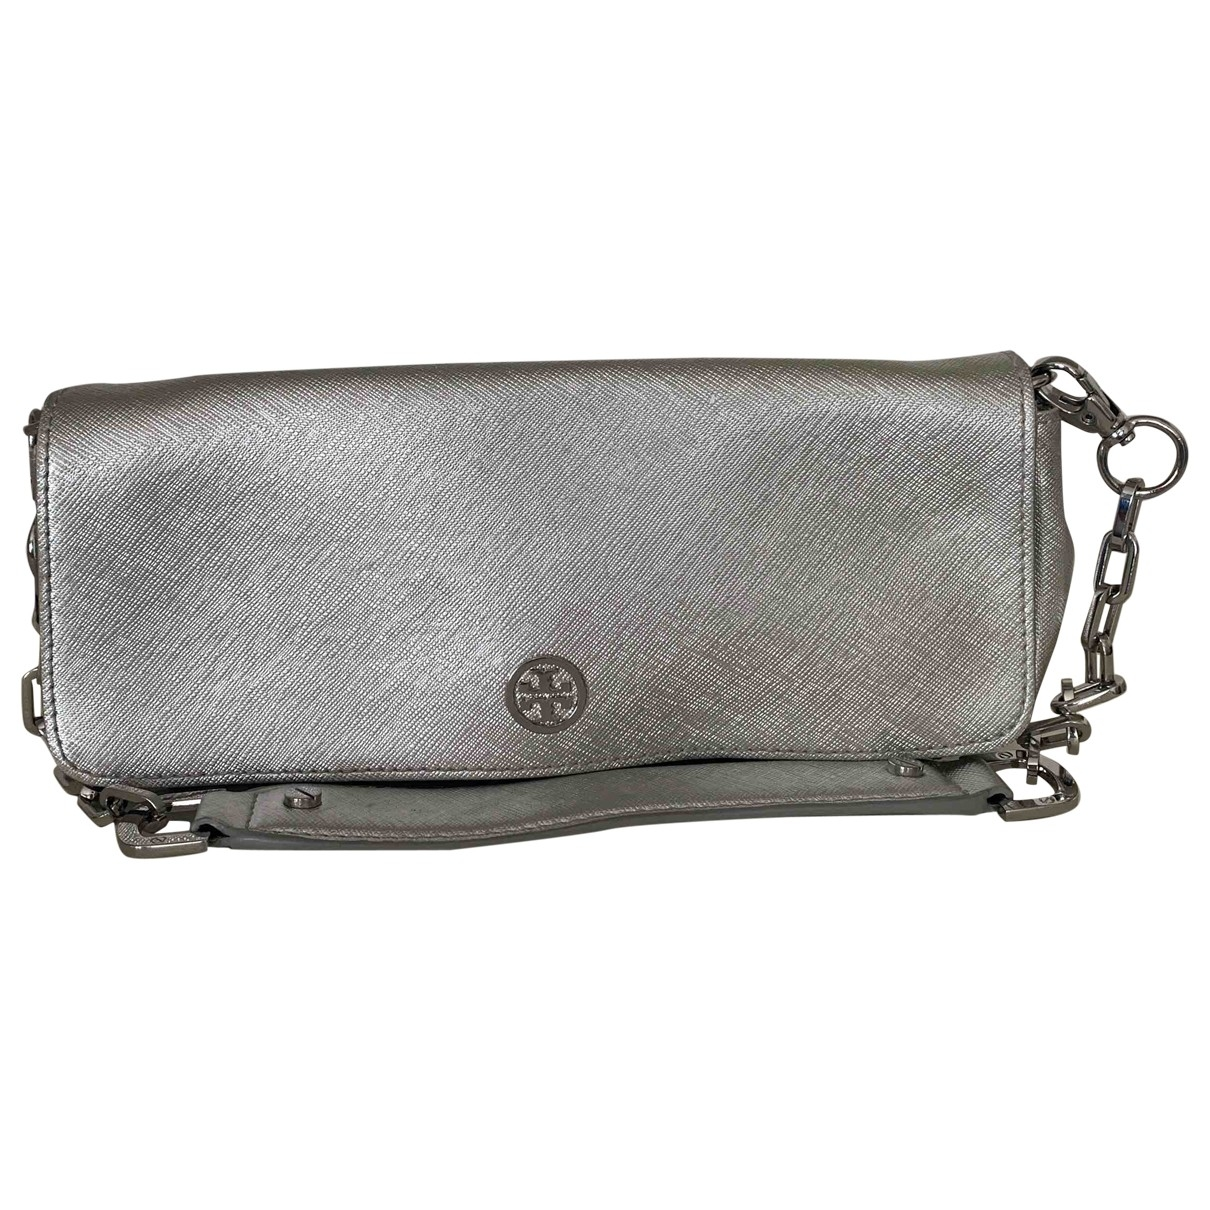 Tory Burch \N Clutch in  Silber Leder